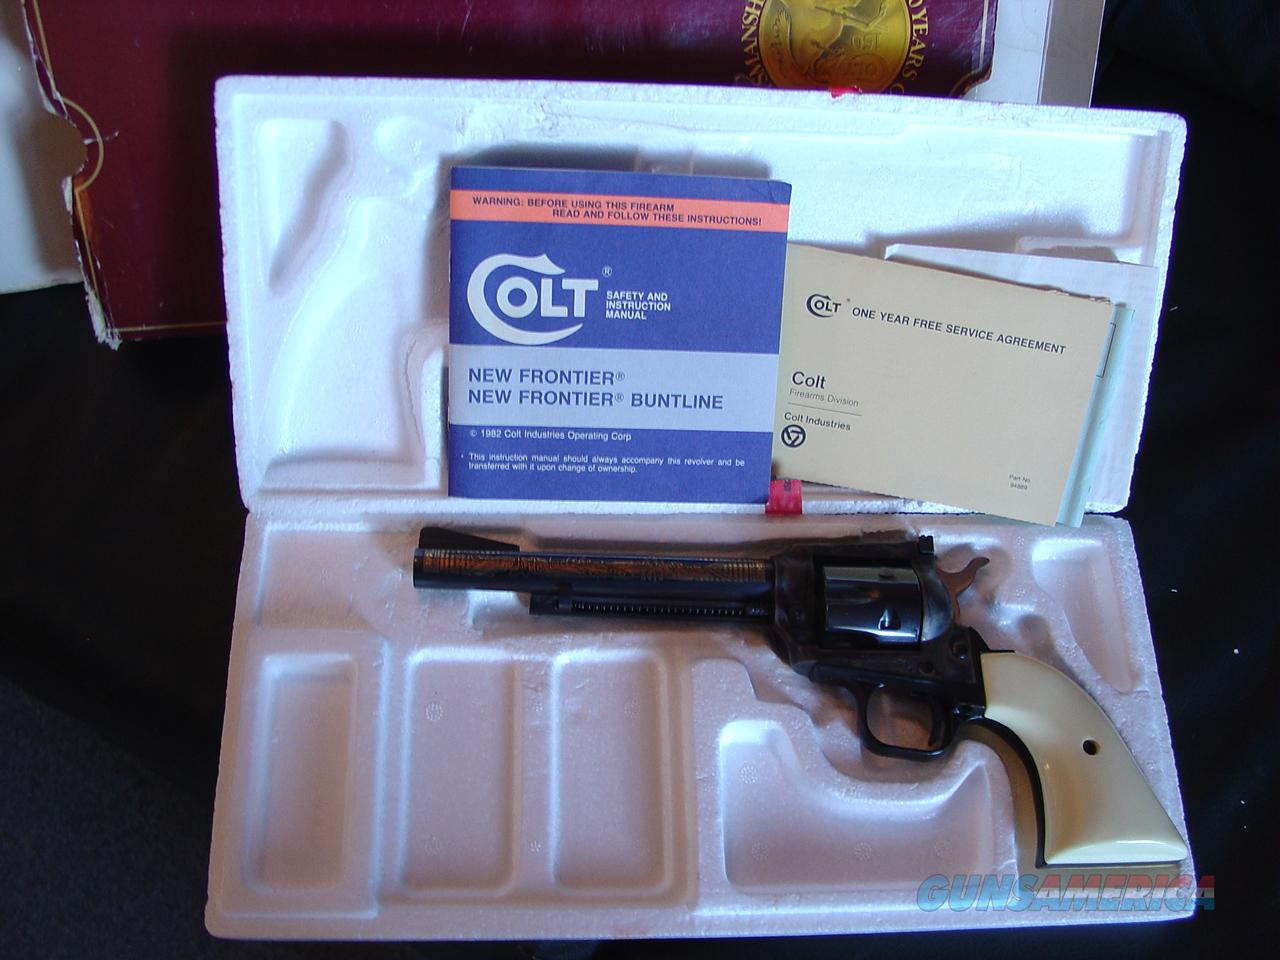 "Colt Kit Carson Commemorative,New Frontier,22LR,6"" barrel,#603 of 951 made in 1984,gold etchings,case hardened frame,faux ivory,original box & manual  Guns > Pistols > Colt Commemorative Pistols"